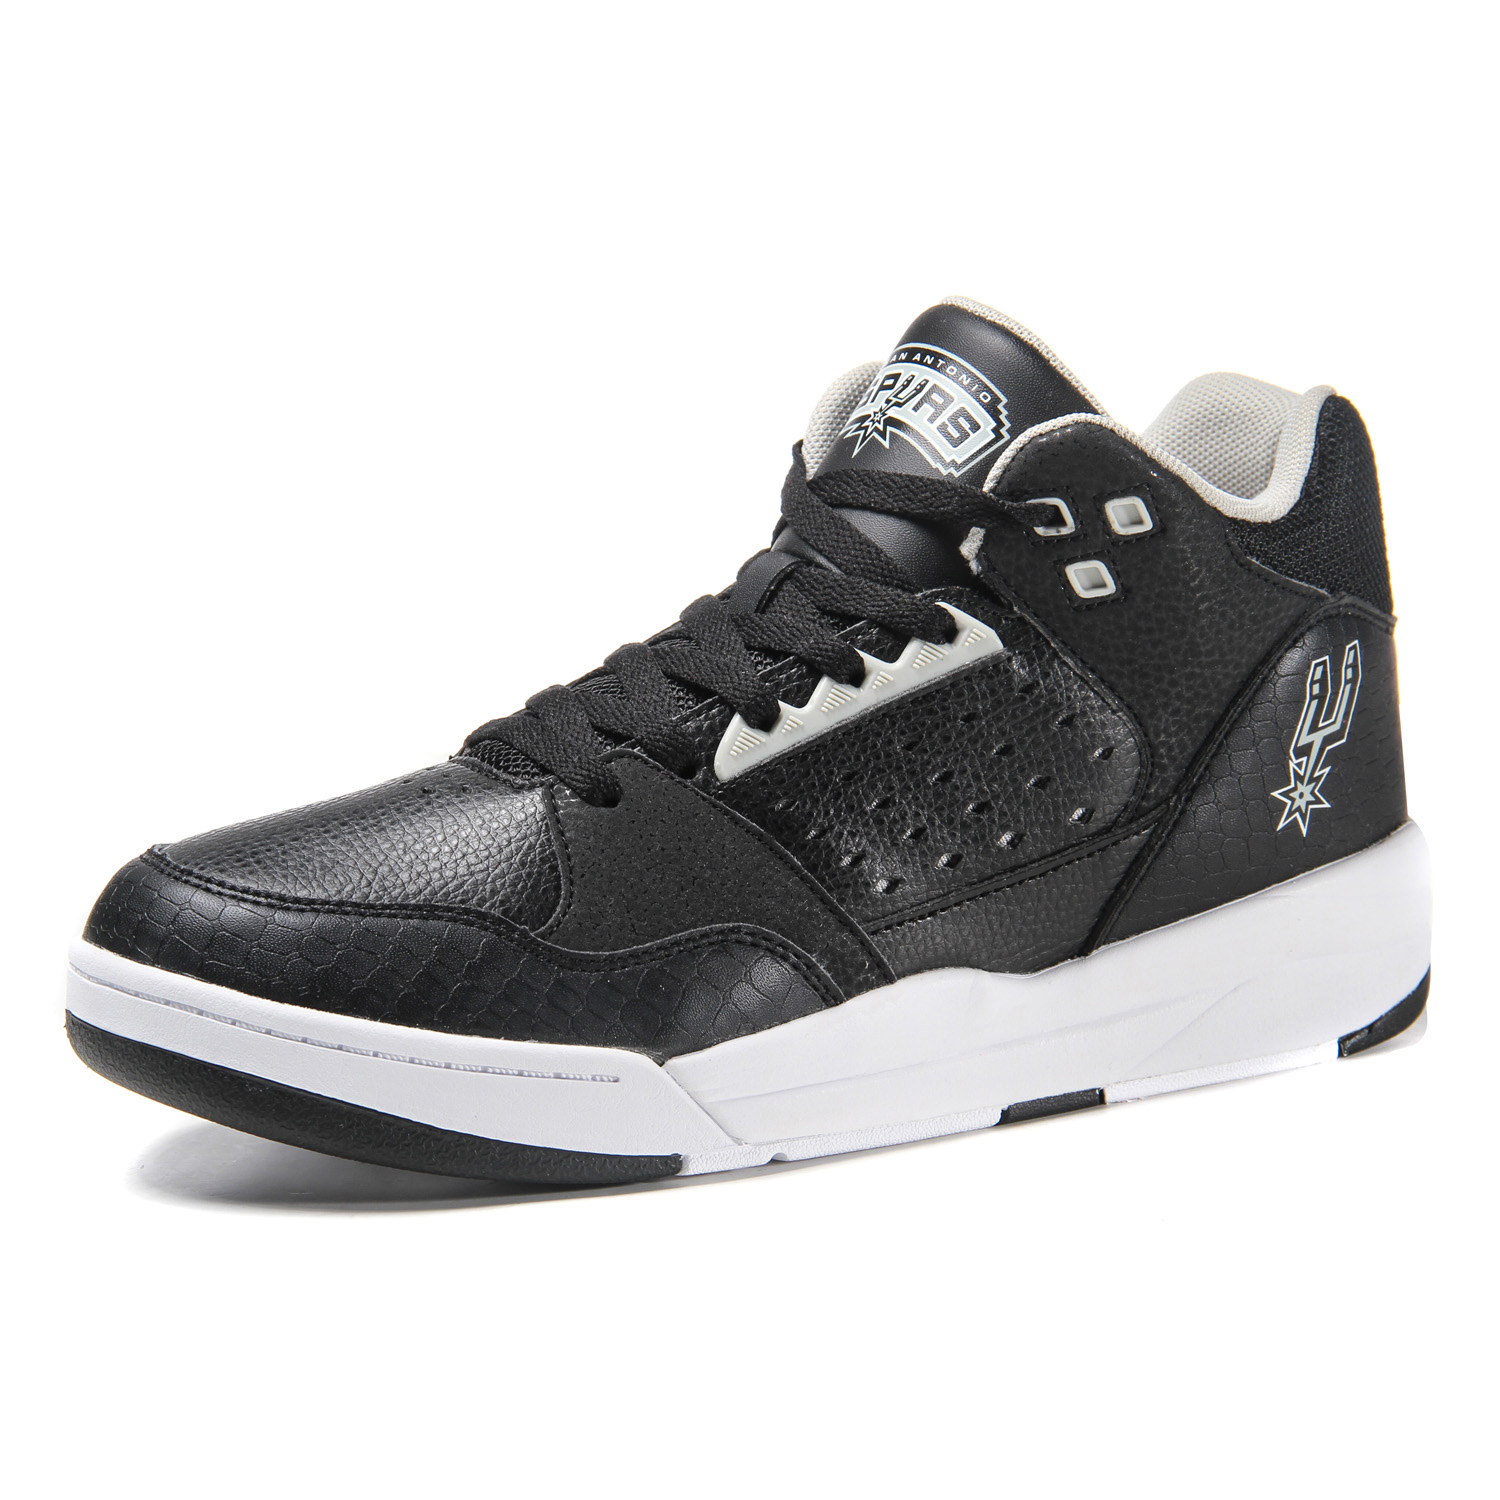 4b90f21aac2a6 USD 50.28  ANTA Anta men s shoes board shoes sports shoes sports ...